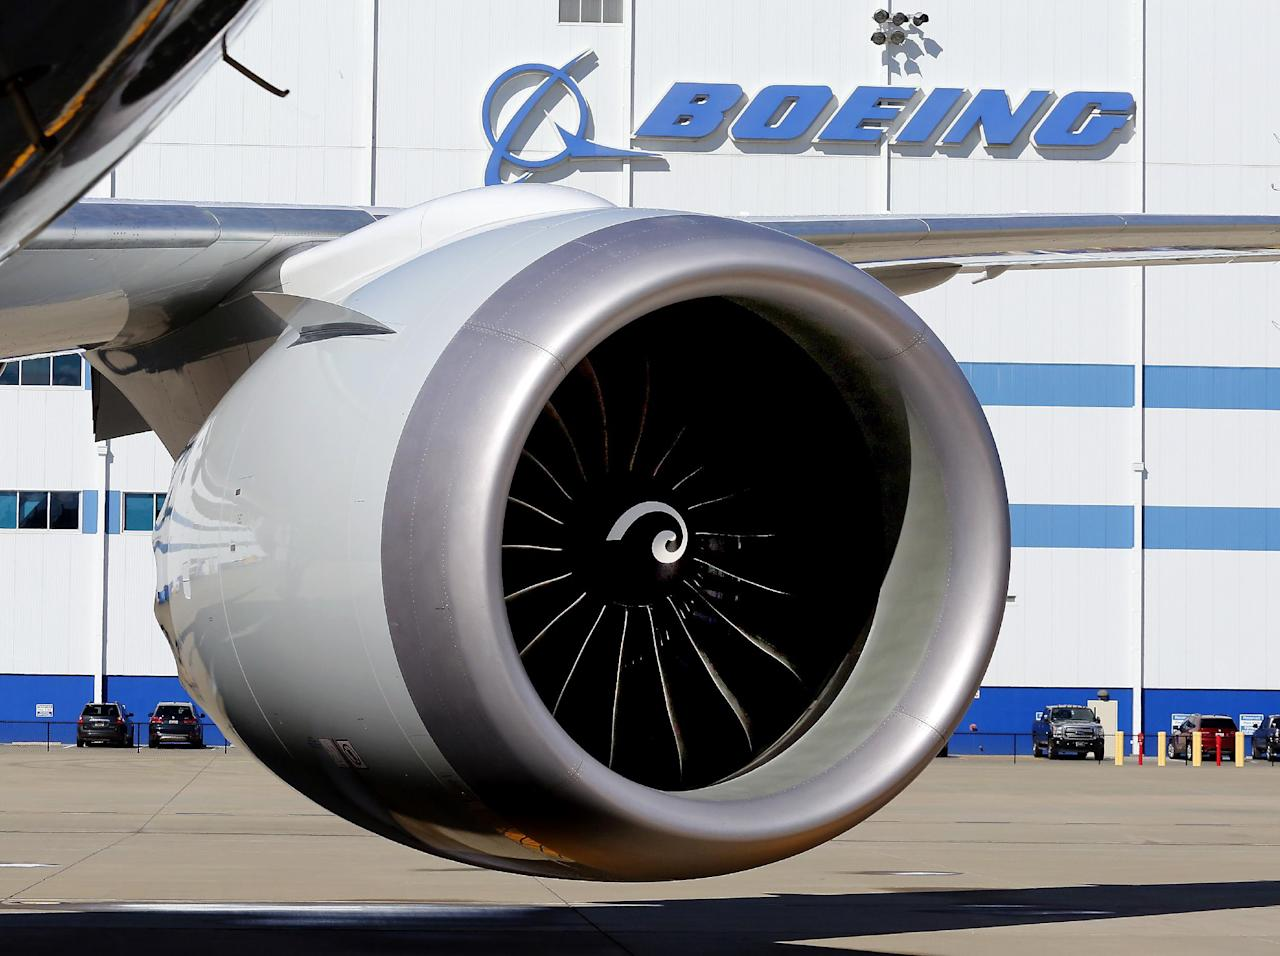 FILE - In this Tuesday, Feb. 16, 2016, file photo, an engine and part of a wing from the 100th 787 Dreamliner to be built at Boeing of South Carolina's North Charleston, S.C., facility are seen outside the plant. Boeing reports financial results on Wednesday, April 27, 2016. (Brad Nettles/The Post and Courier via AP, File) MANDATORY CREDIT